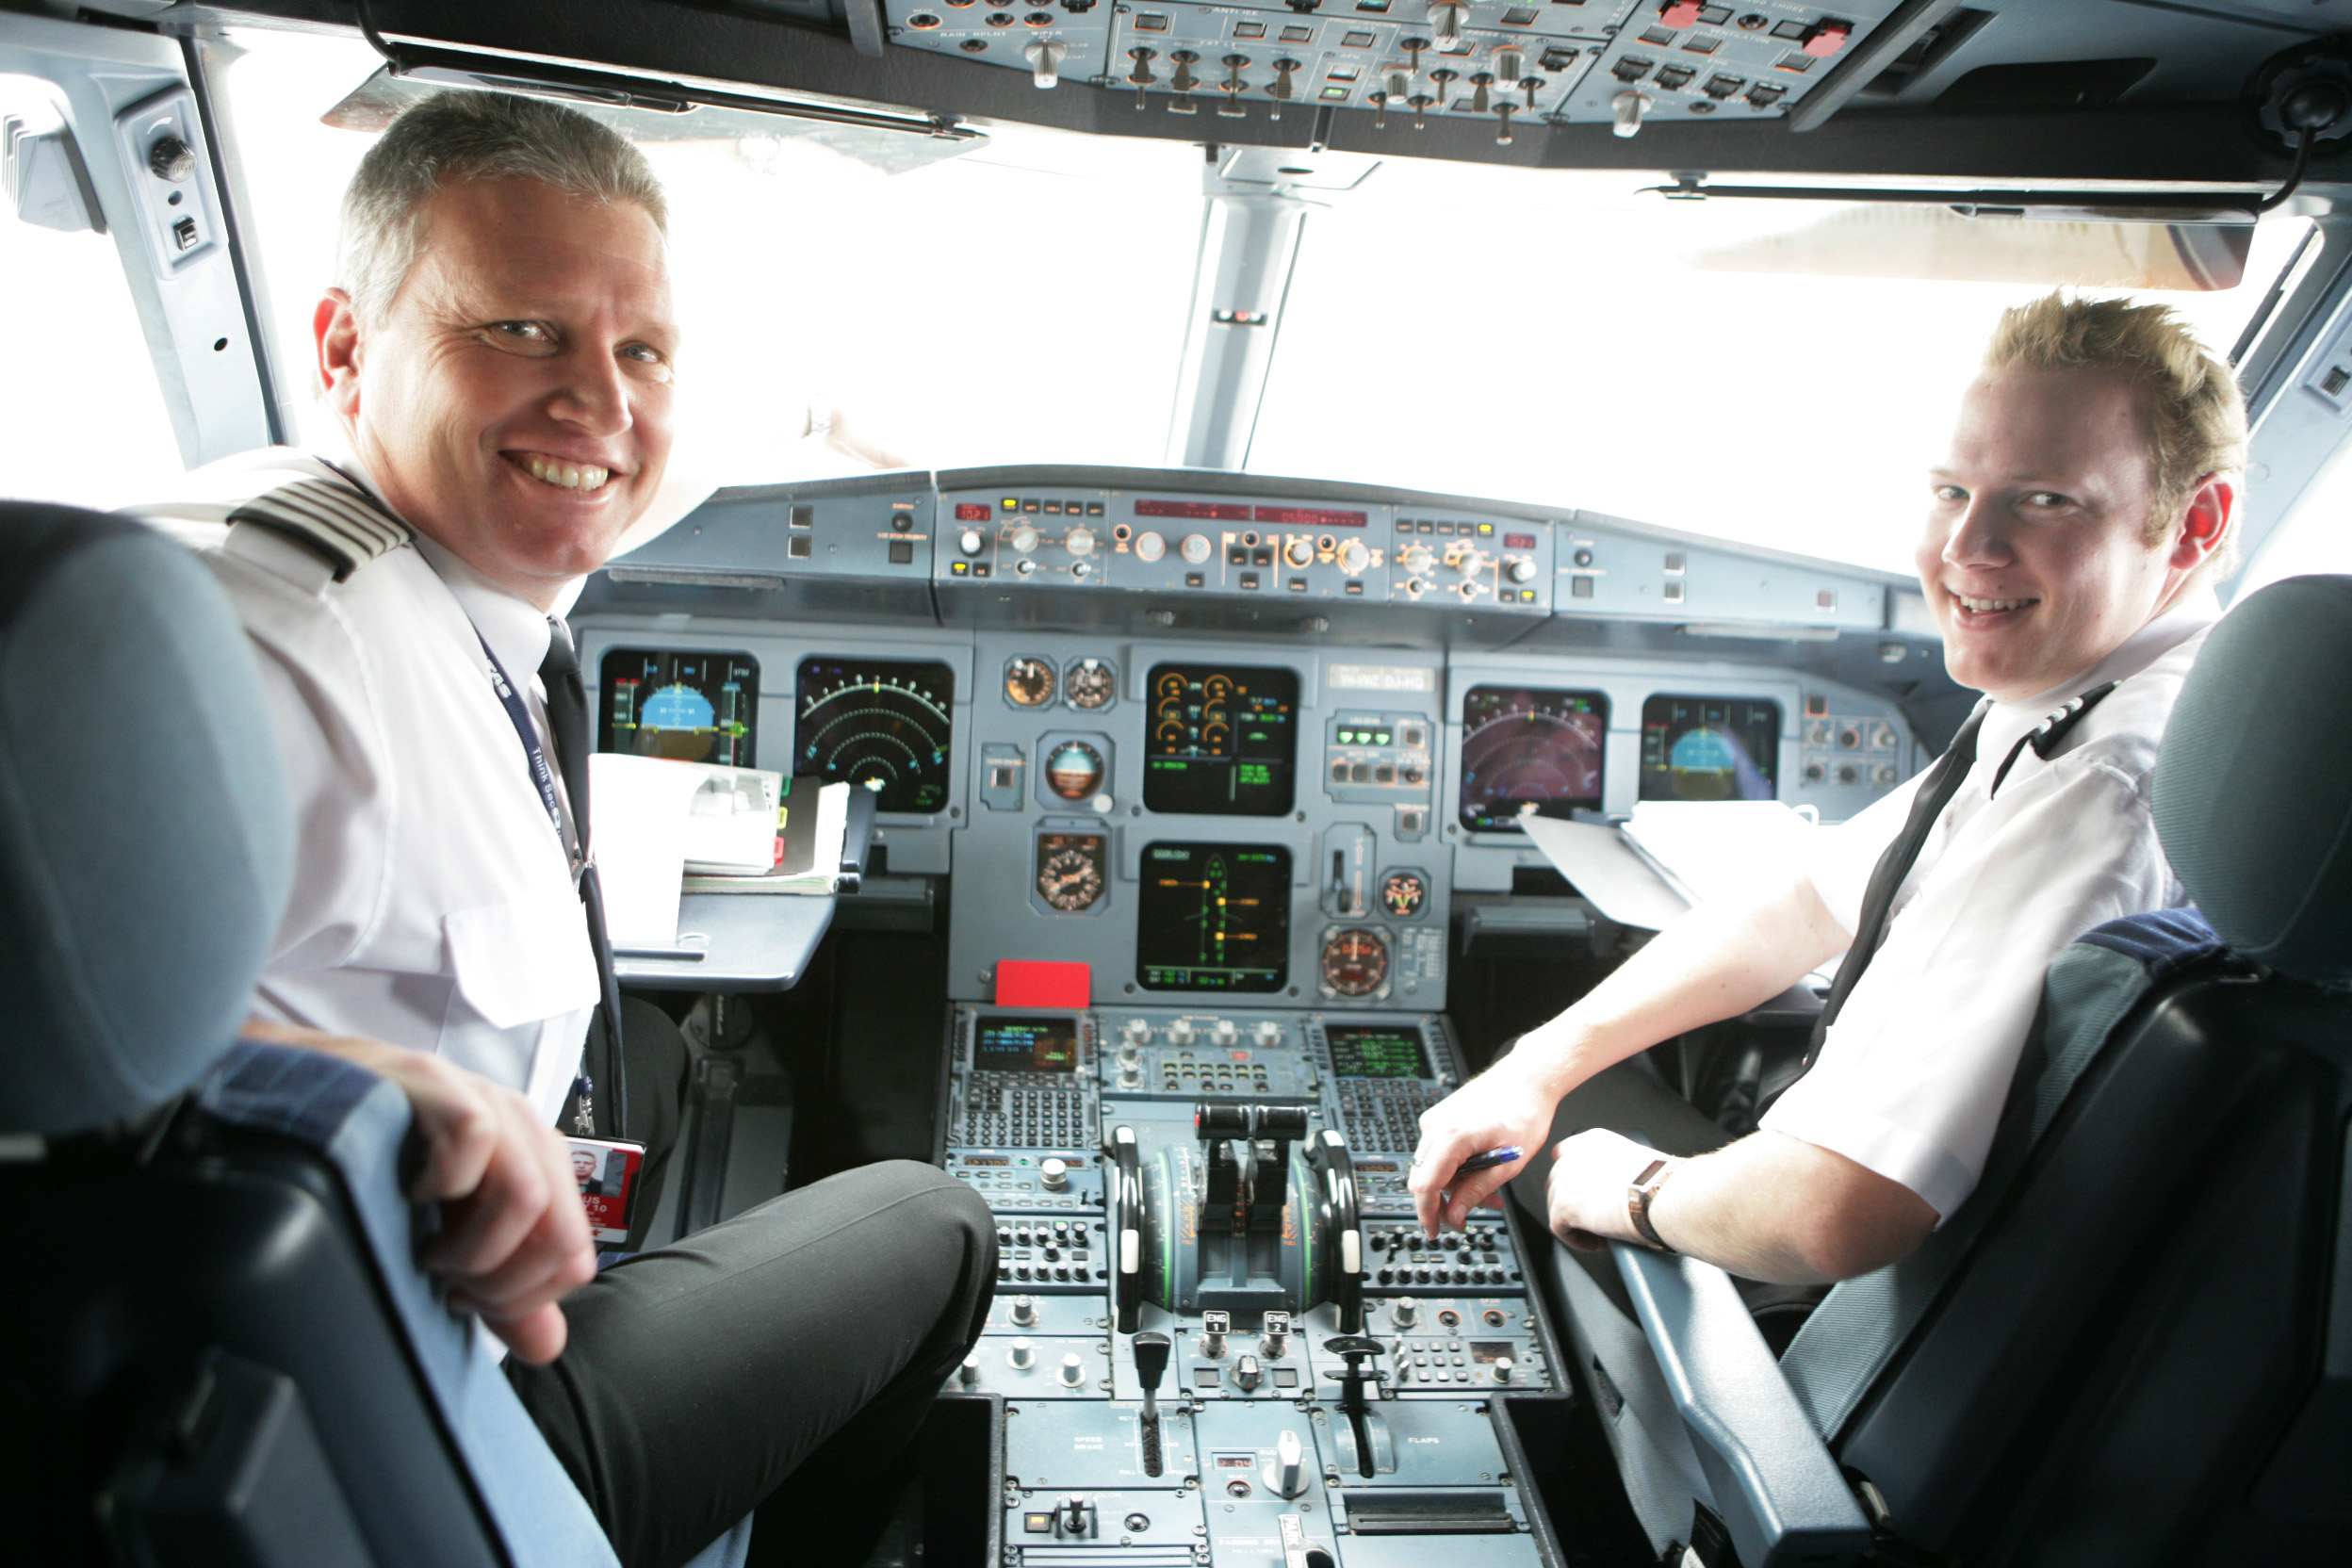 Two Jetstar pilots in an A320 aircraft.